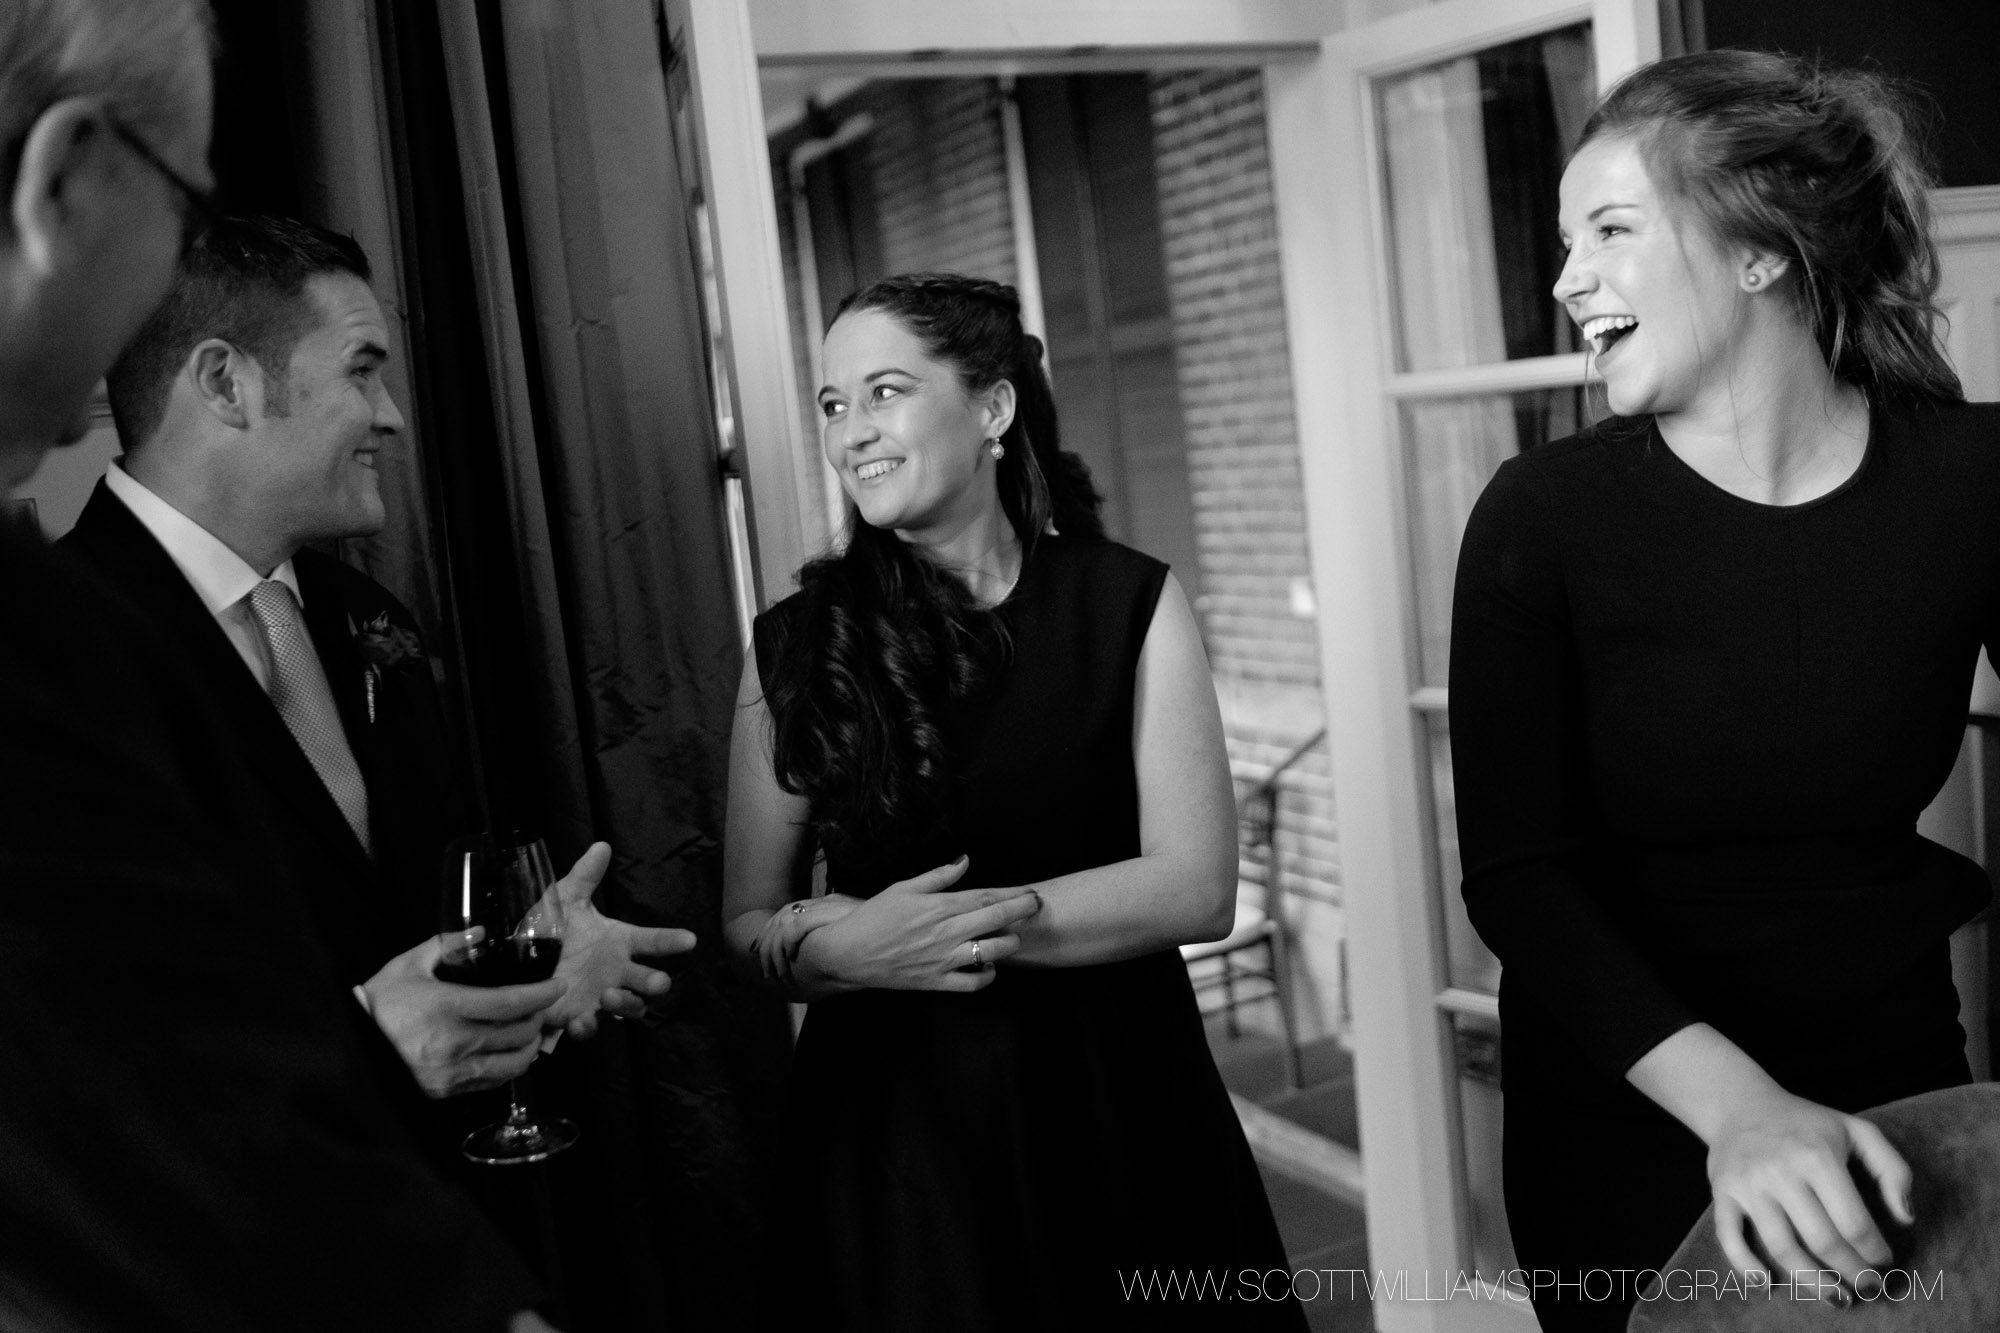 A candid black and white photograph of guests at a small, intimate wedding at Langdon Hall in Cambridge, Ontario.